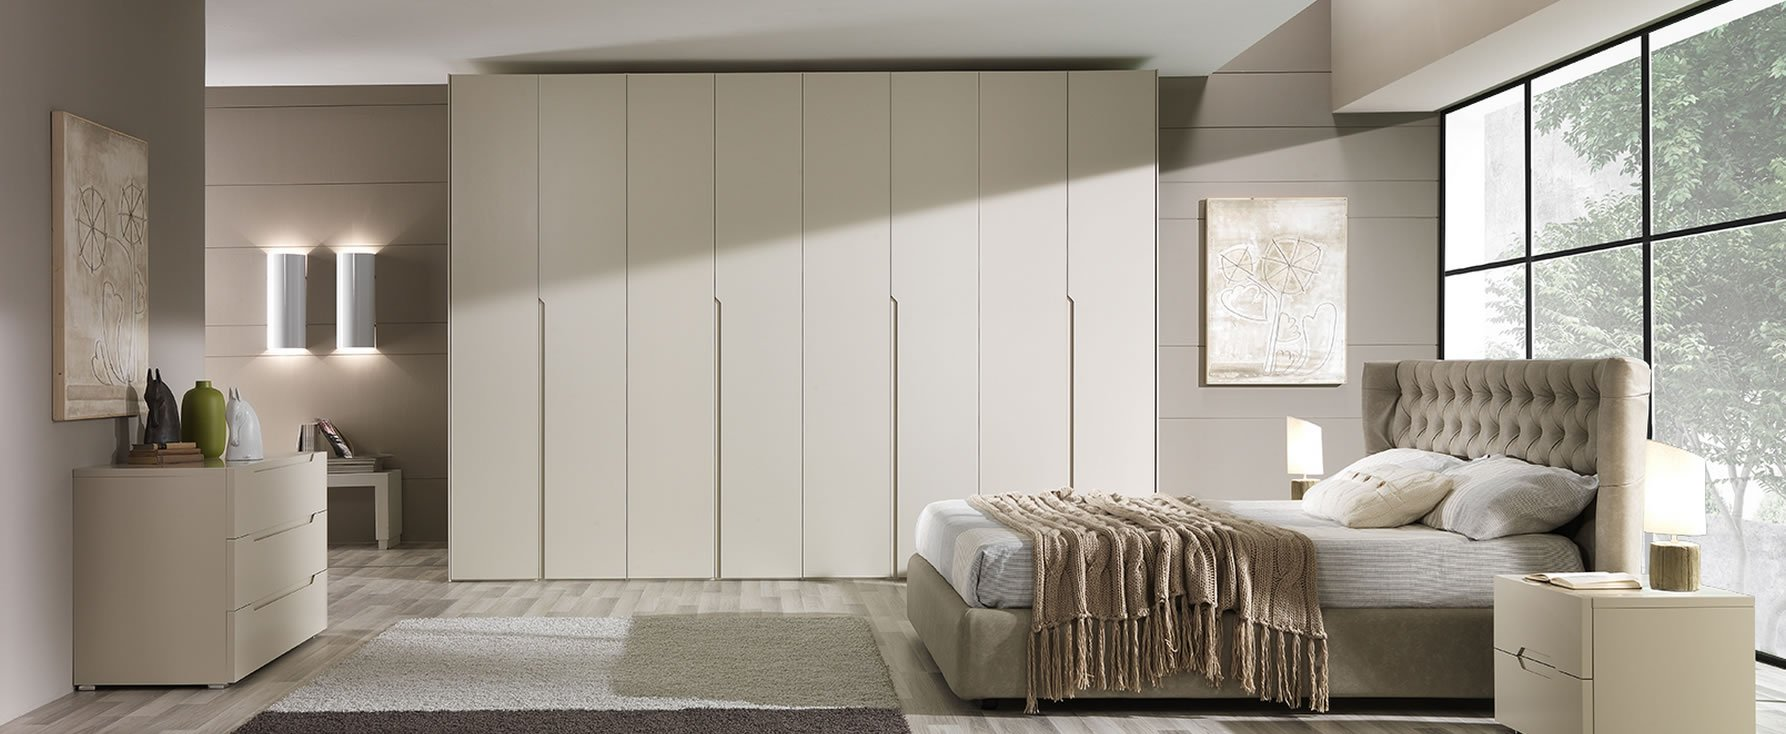 Idaw Custom Made Cabinet Fitted Wardrobe And Designer Chests Of Drawers